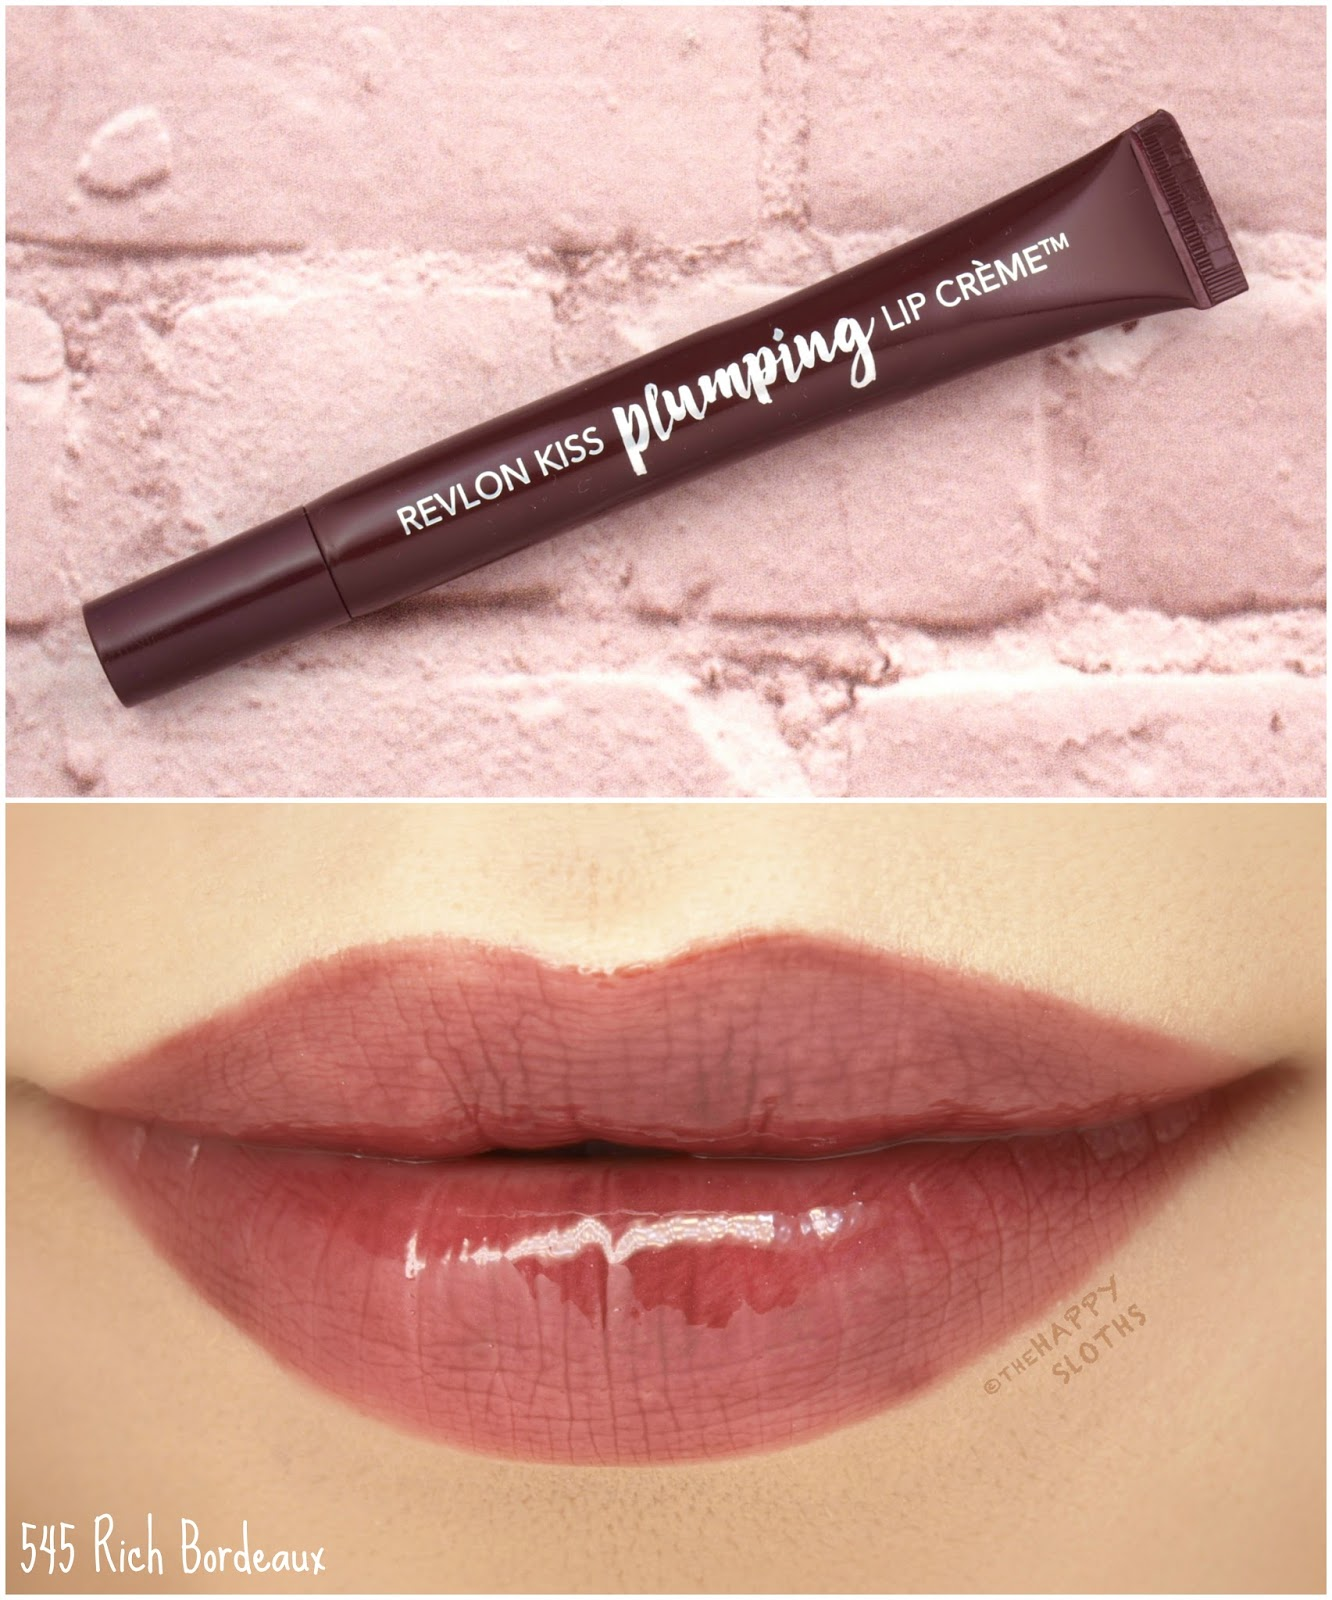 "Revlon | Kiss Plumping Lip Creme in ""545 Rich Bordeaux"": Review and Swatches"